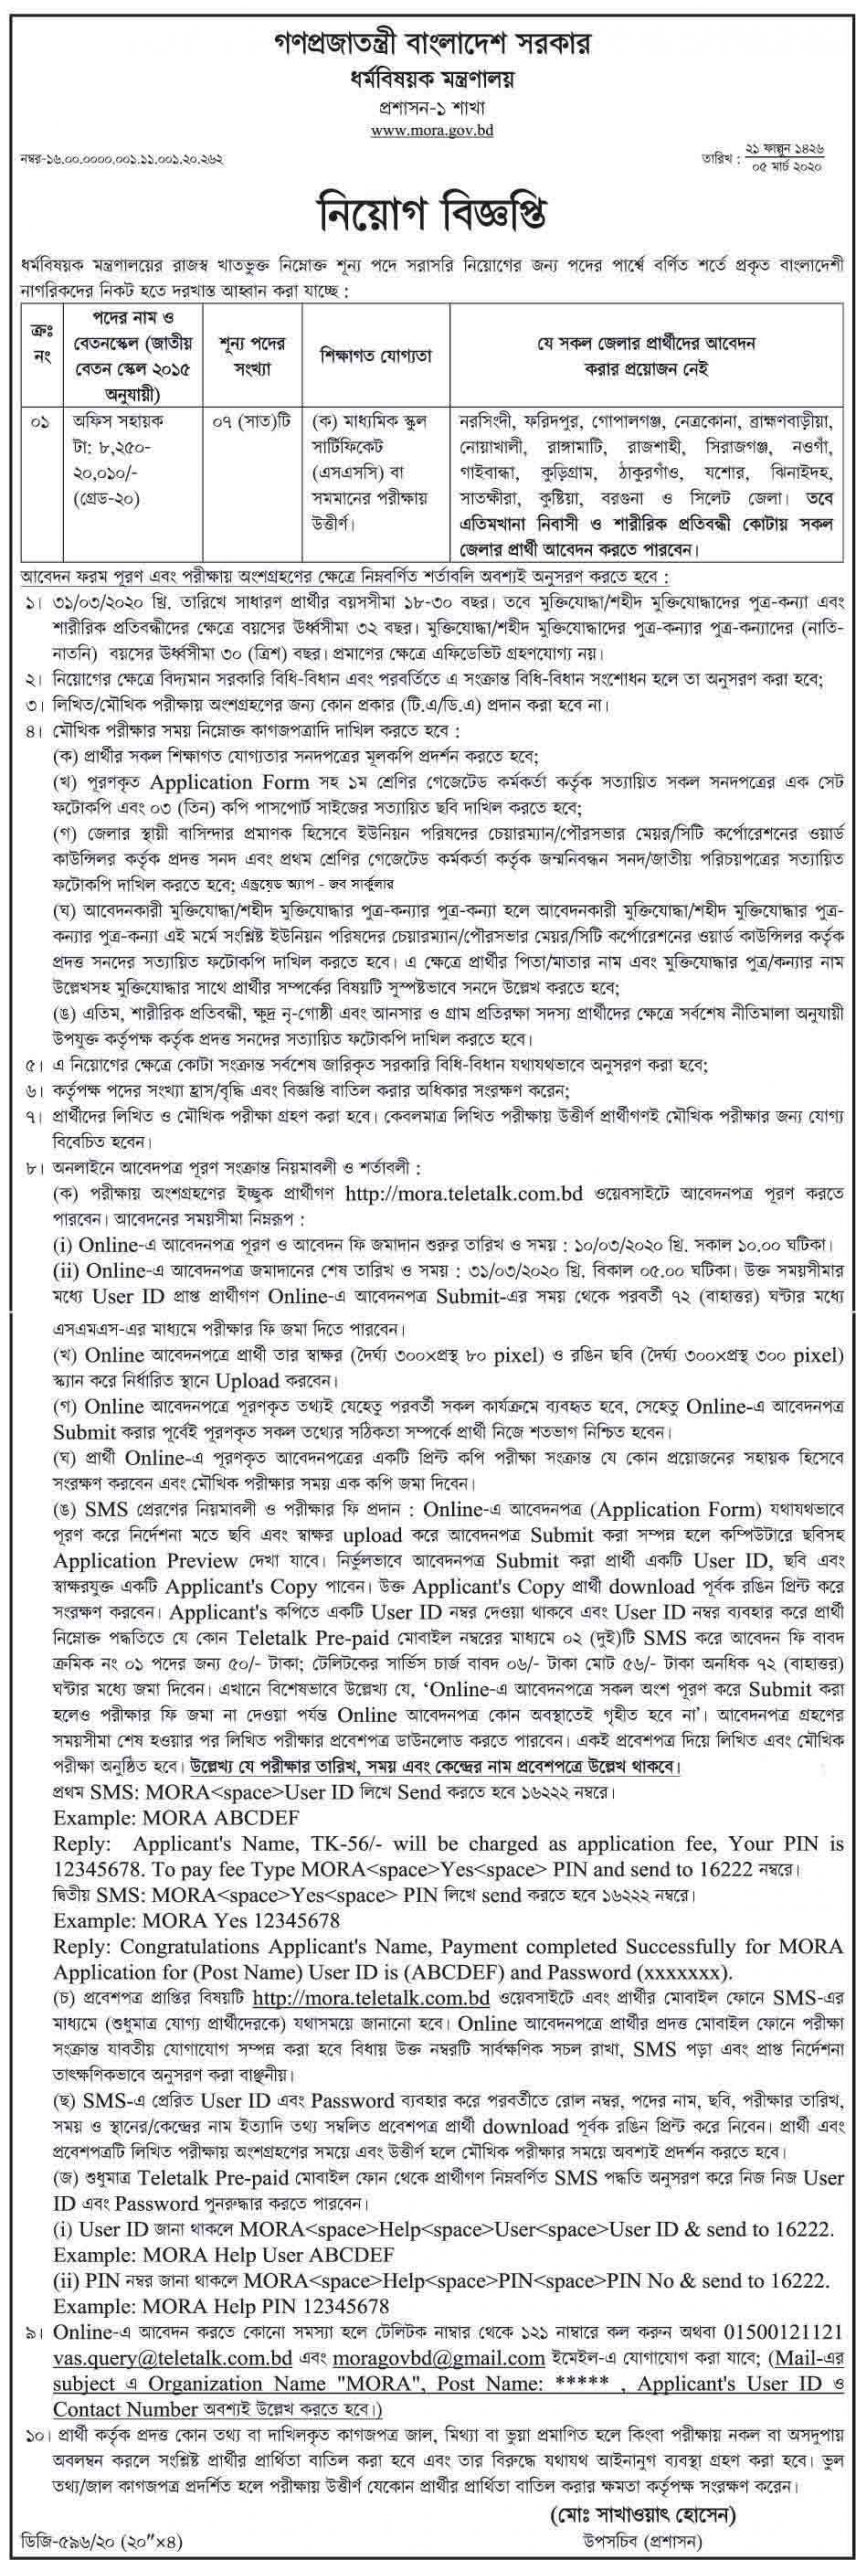 Ministry of Religious Affairs Job Circular 2020- Apply mora.teletalk.com.bd 2